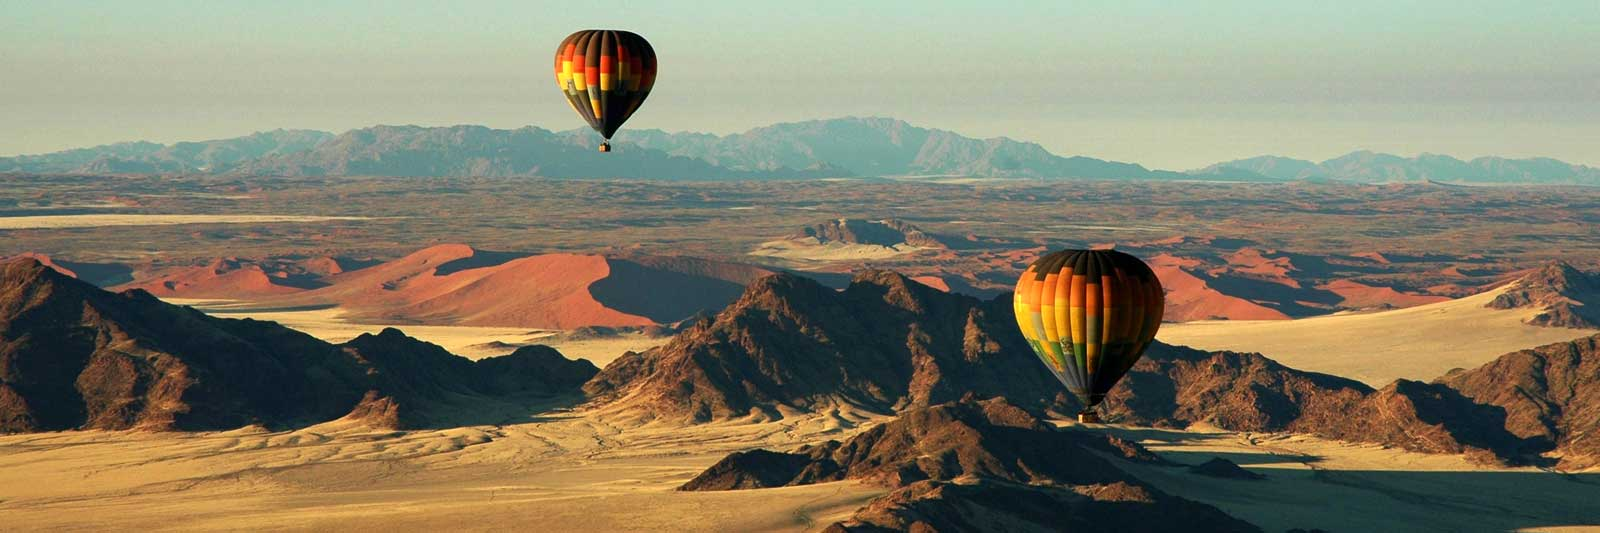 Sky Balloon Safaris, Namib Desert